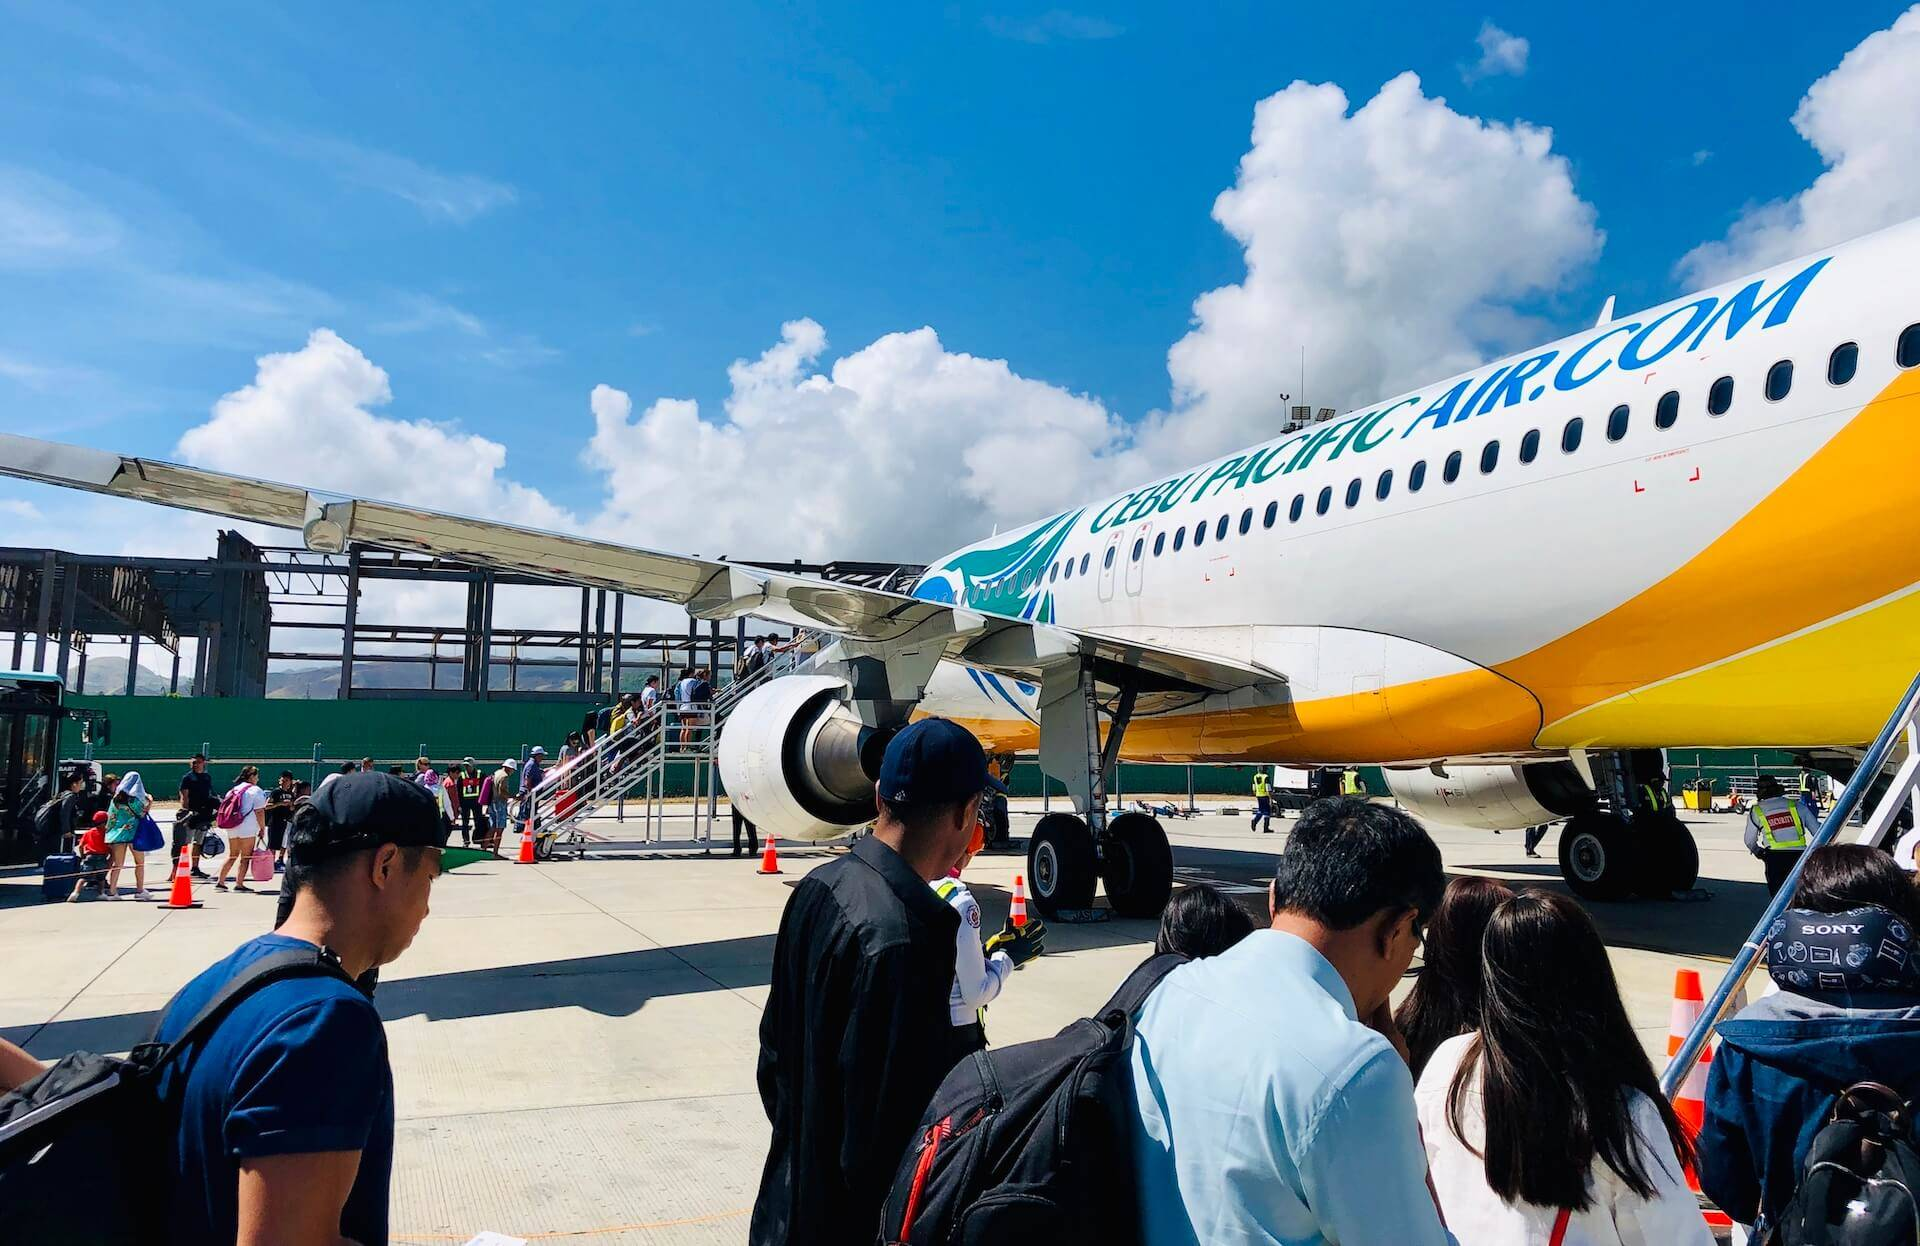 Boarding Cebu Pacific